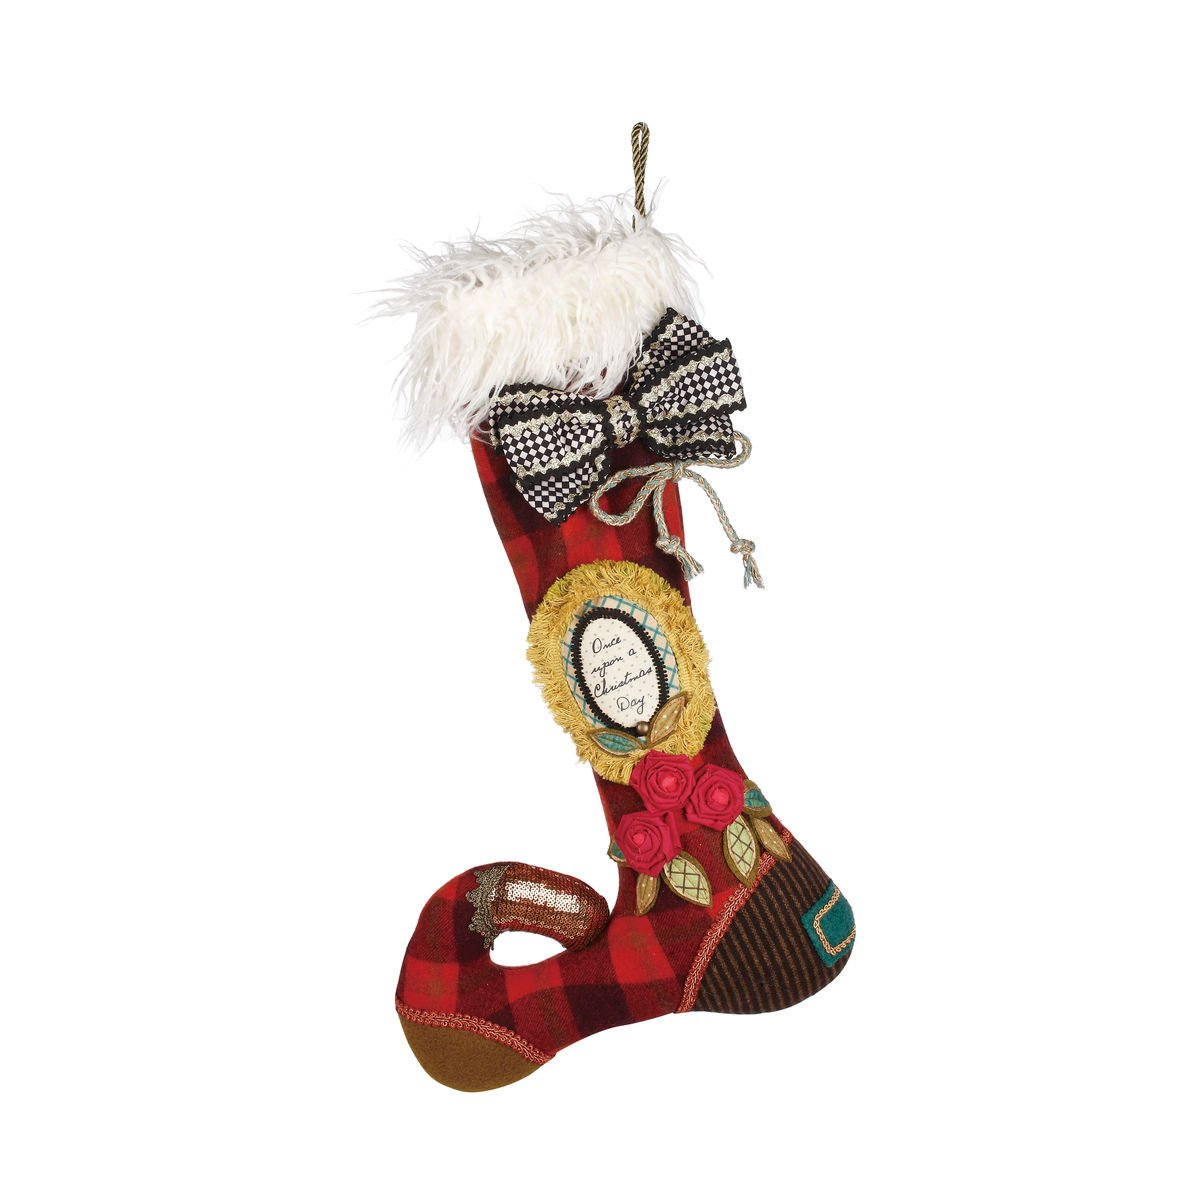 DEMDACO 21 inch Floria Once Upon a Christmas Day Plush Stocking Decoration